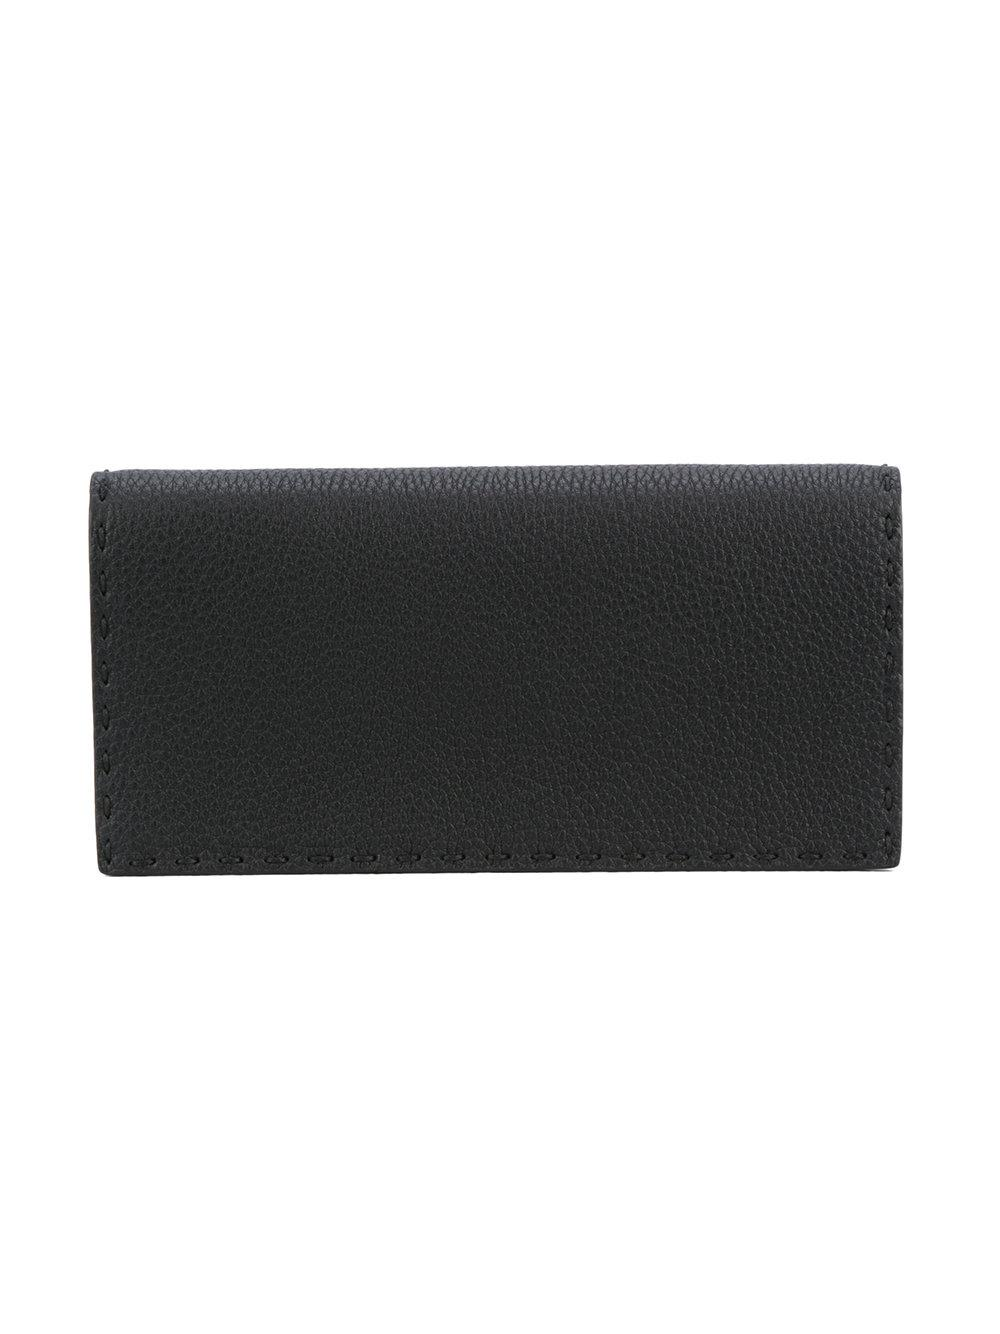 Fendi - Black Portefeuille Selleria for Men - Lyst. Afficher en plein écran c7a2d812ce6